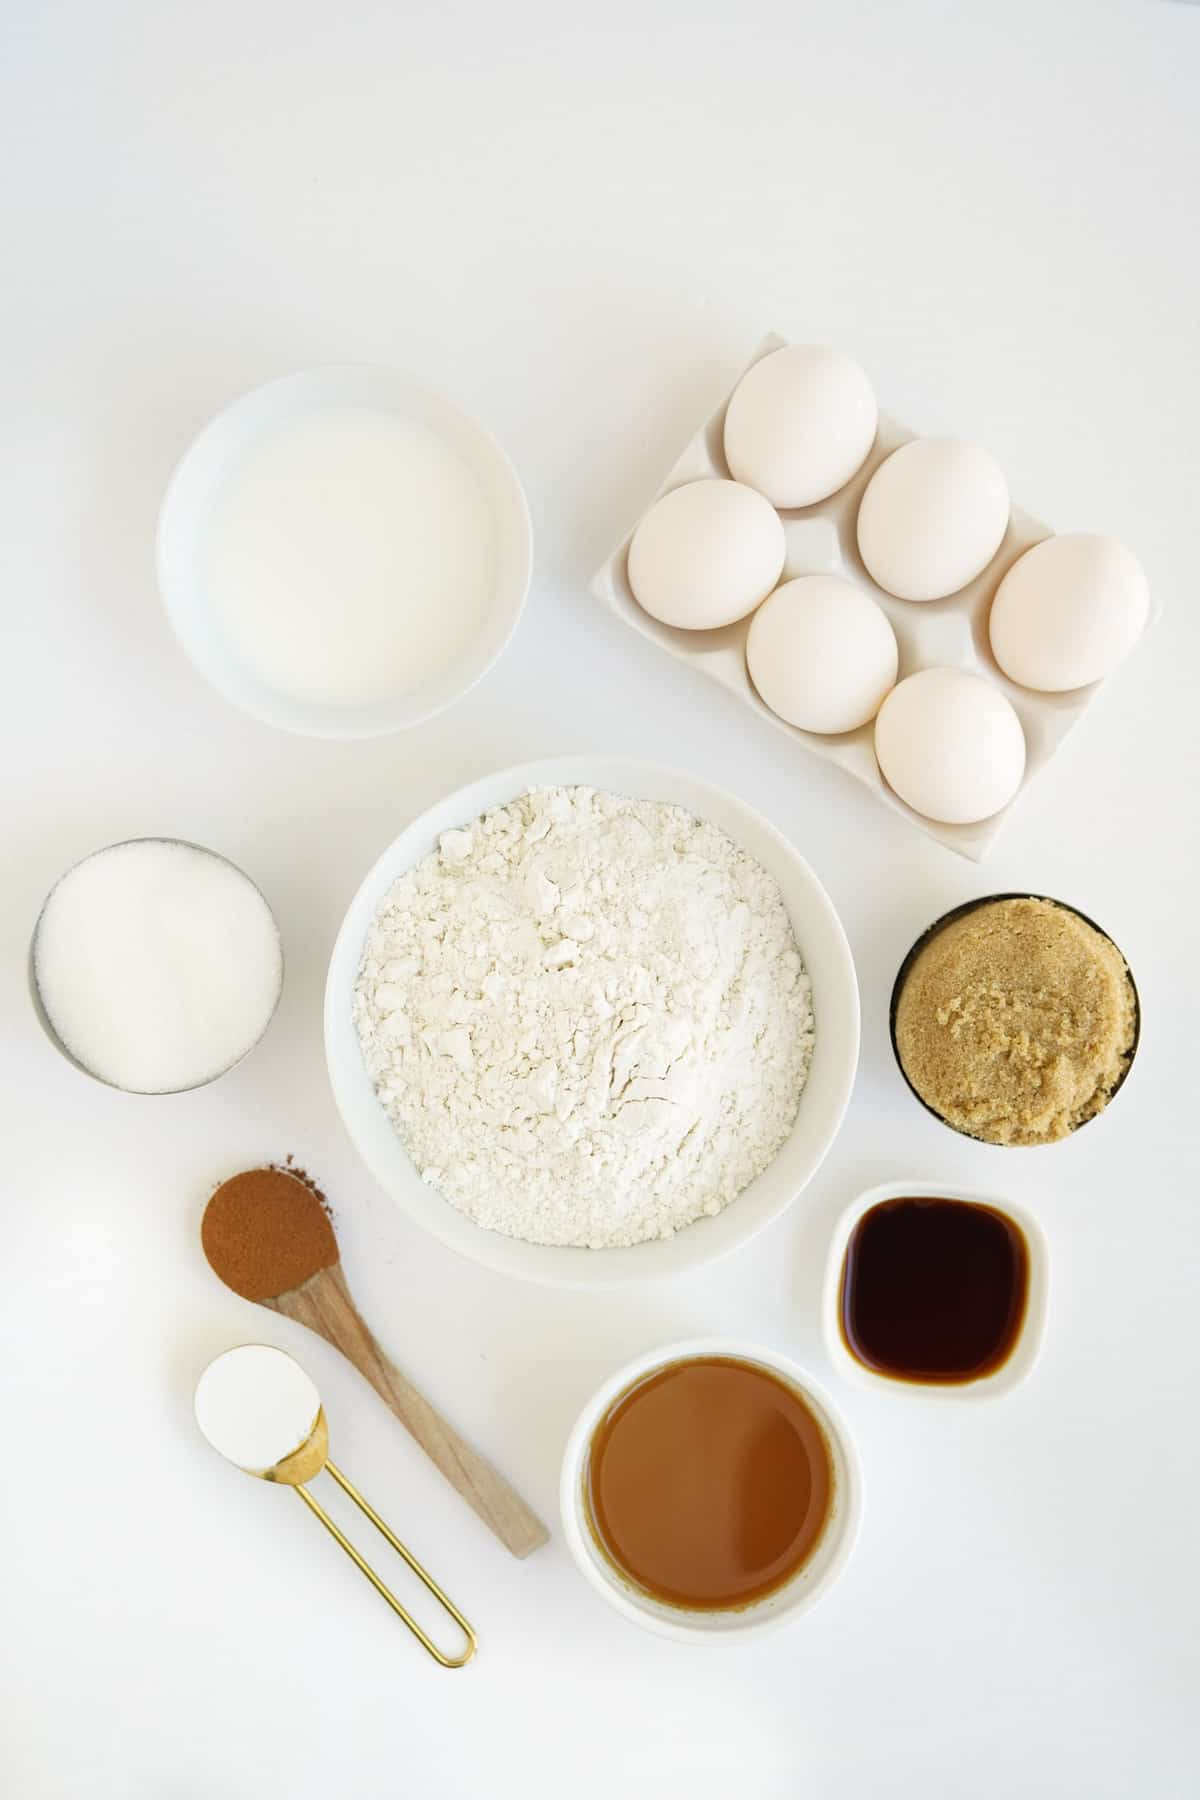 Overhead view of ingredients needed for recipe, on a white surface.